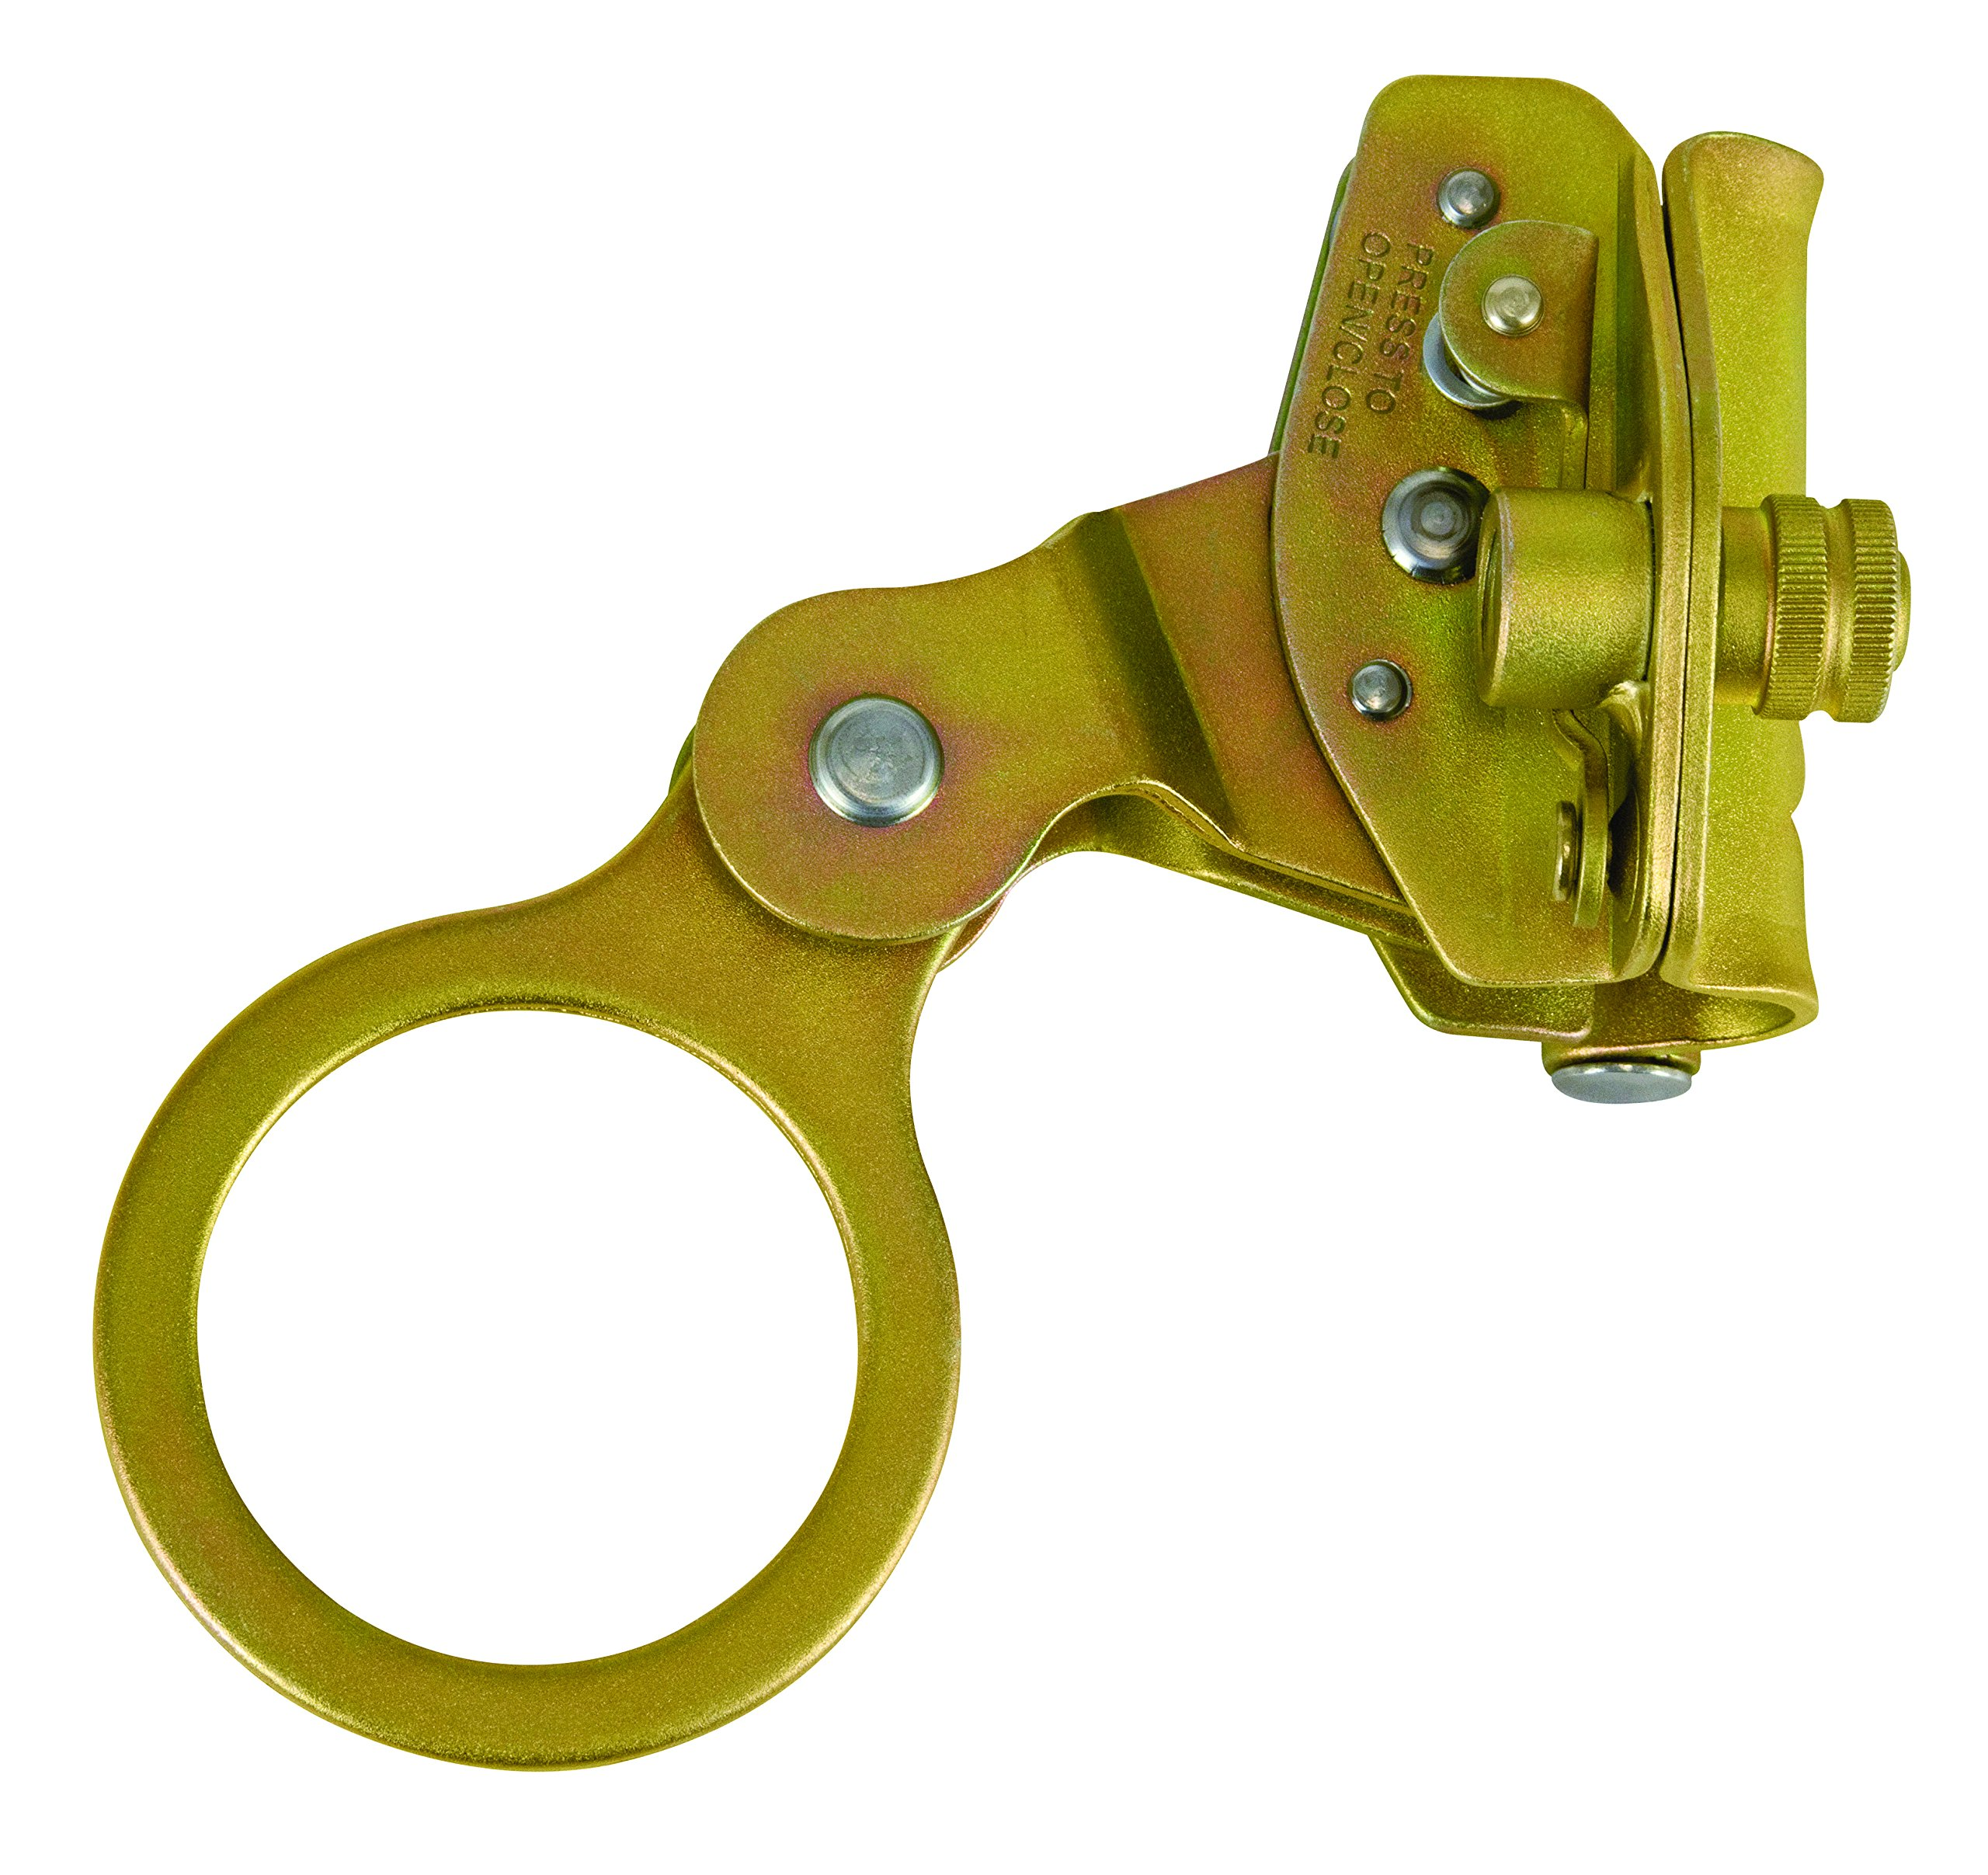 FallTech 7479 Hinged Self-Tracking 5/8-Inch Rope Grab with 2-Inch Connecting Eye by FallTech